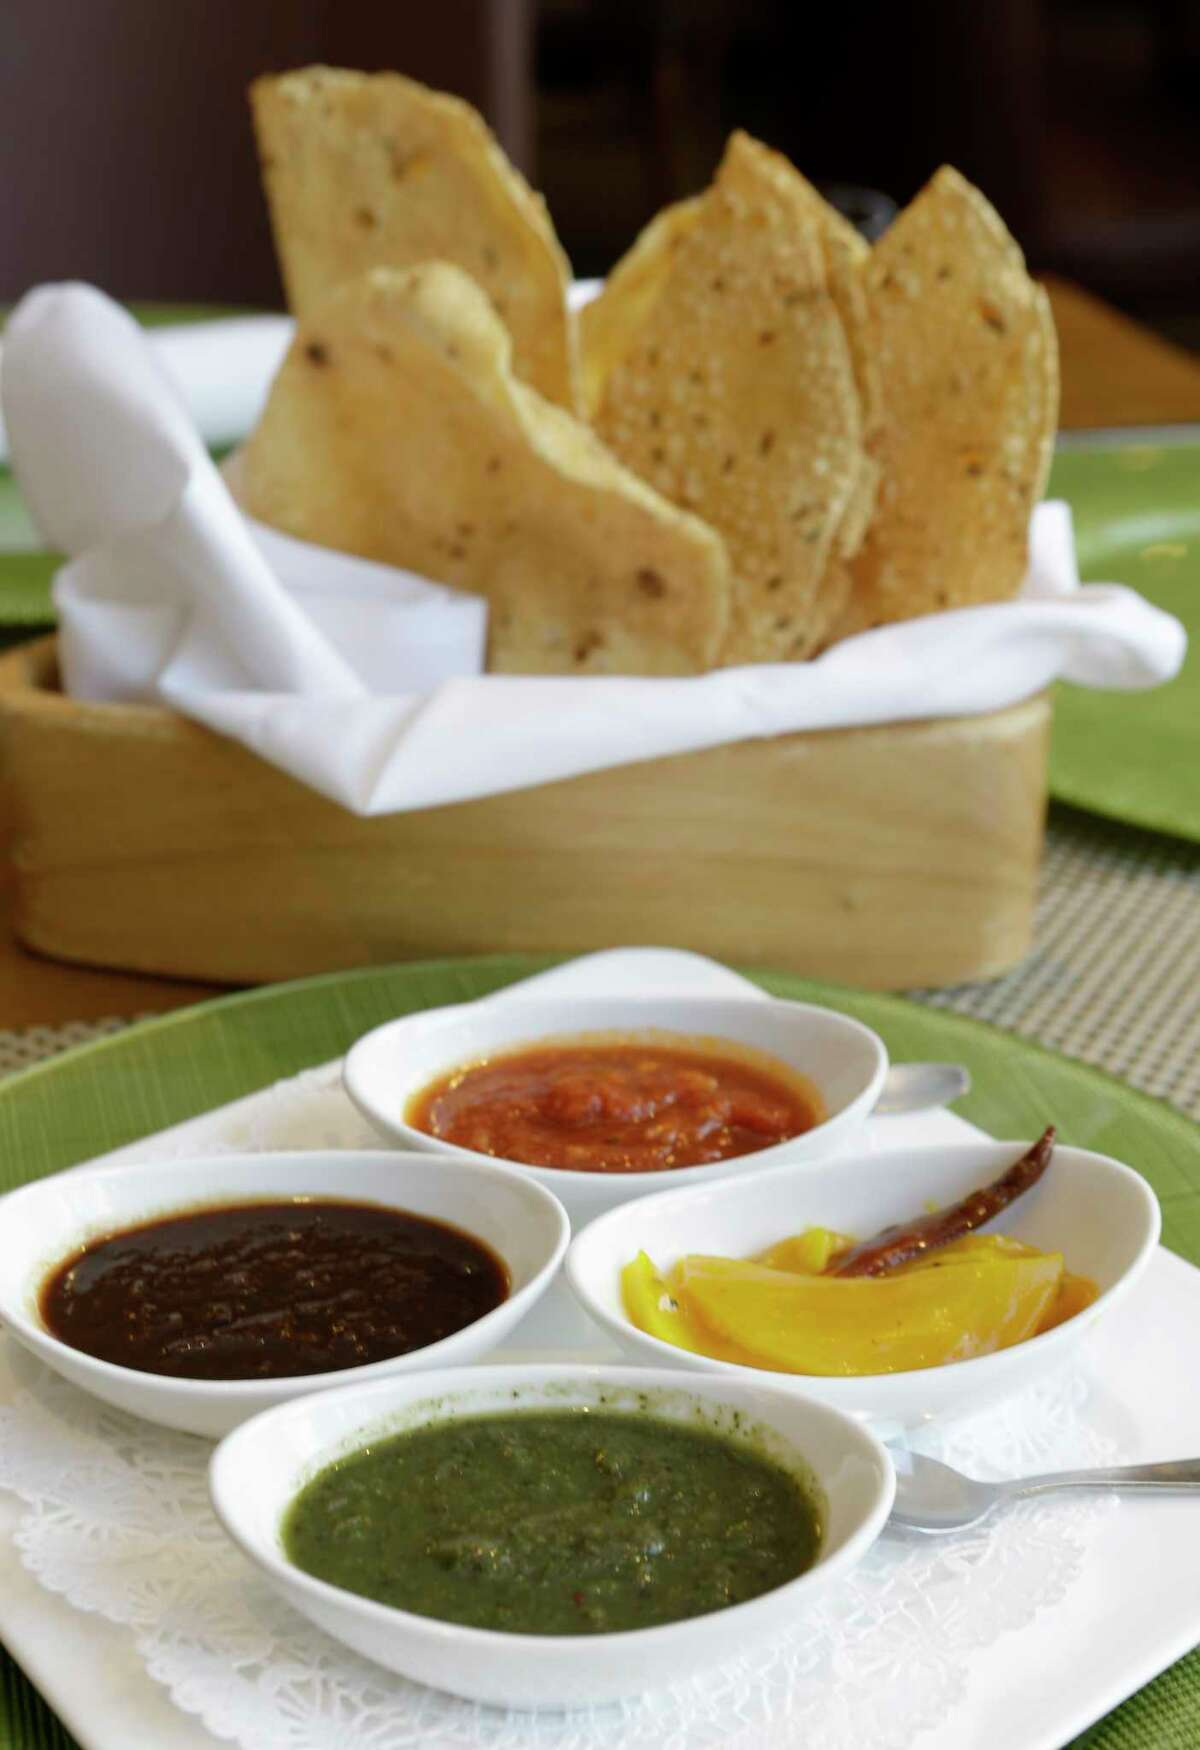 Pappadums, served with superlative house chutneys, are wonderfully textured.